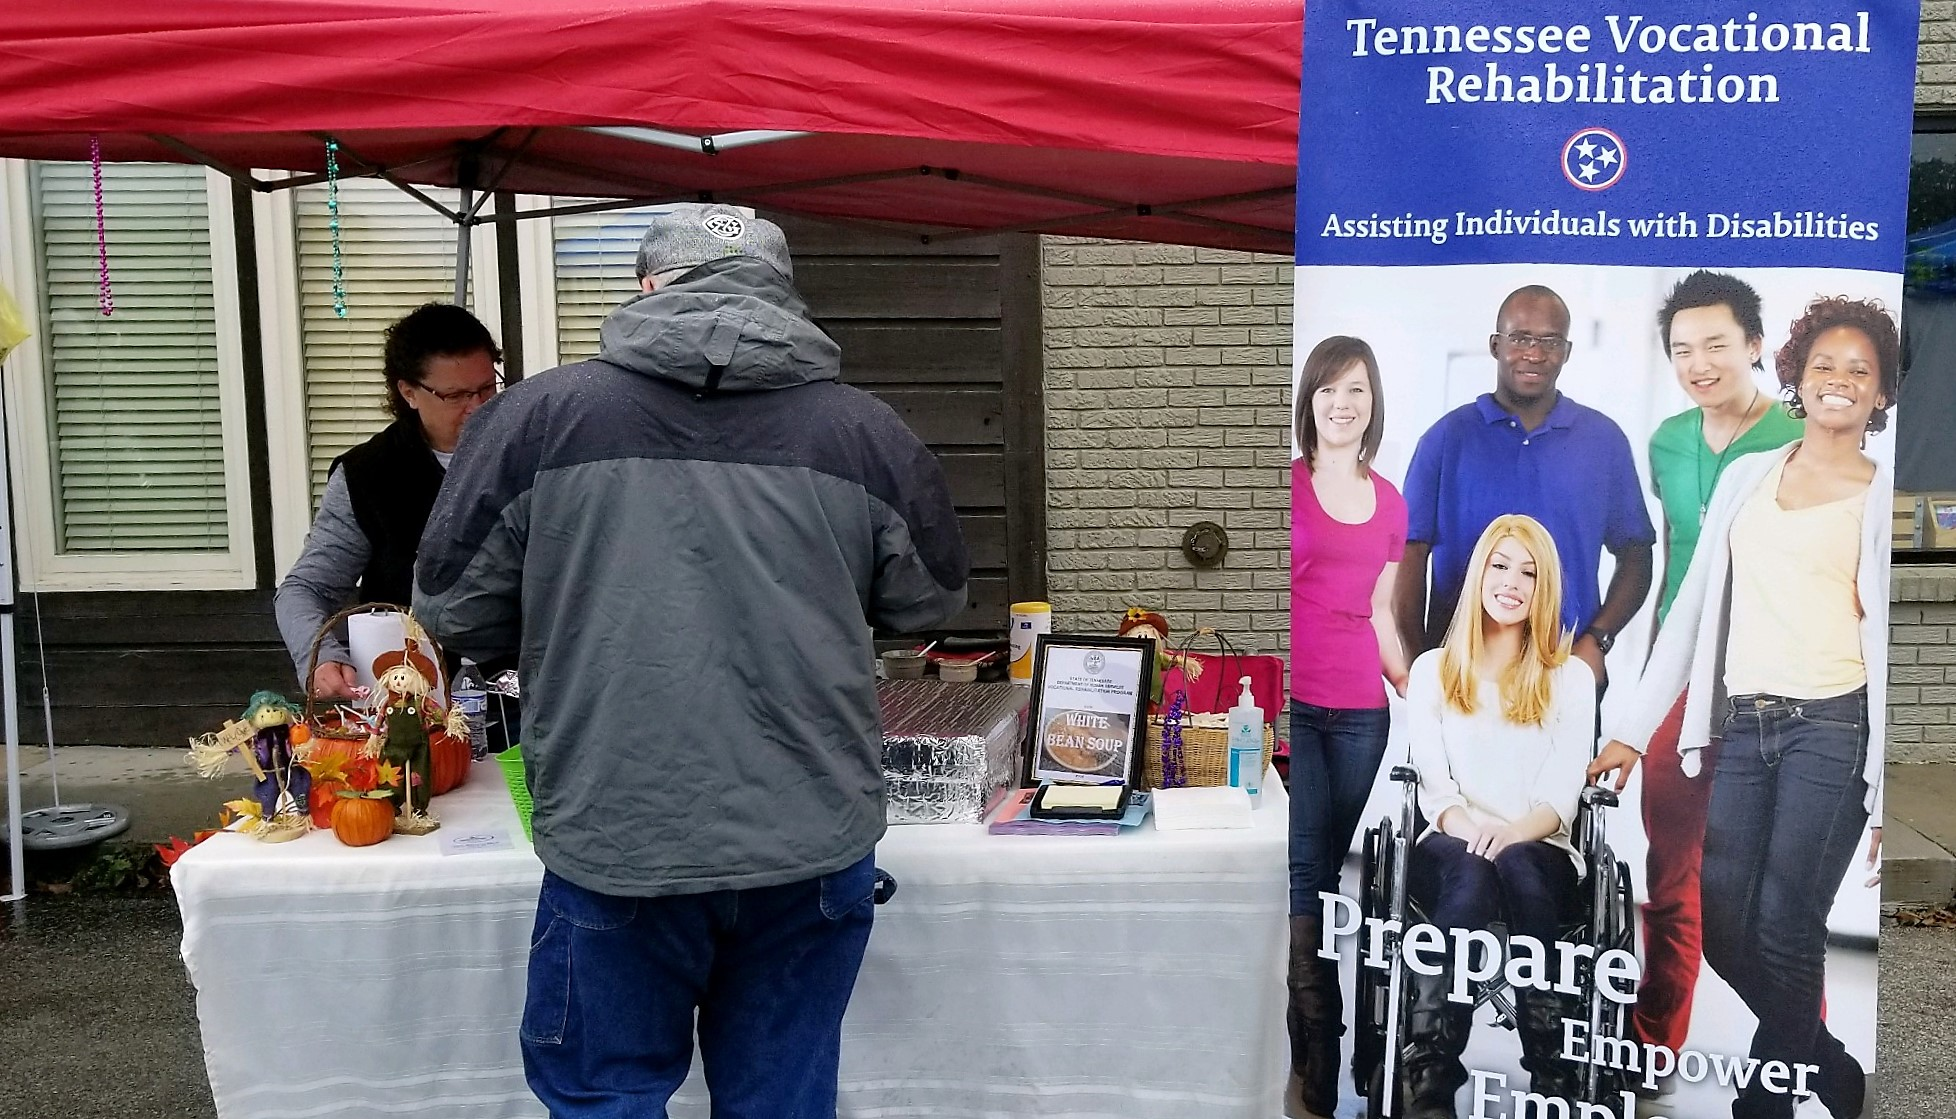 The Department of Human Services participated in Cooking on the Square in Cookeville. Health Ambassador, Jordan Herald, served up some healthy meals with Vocational Rehab.